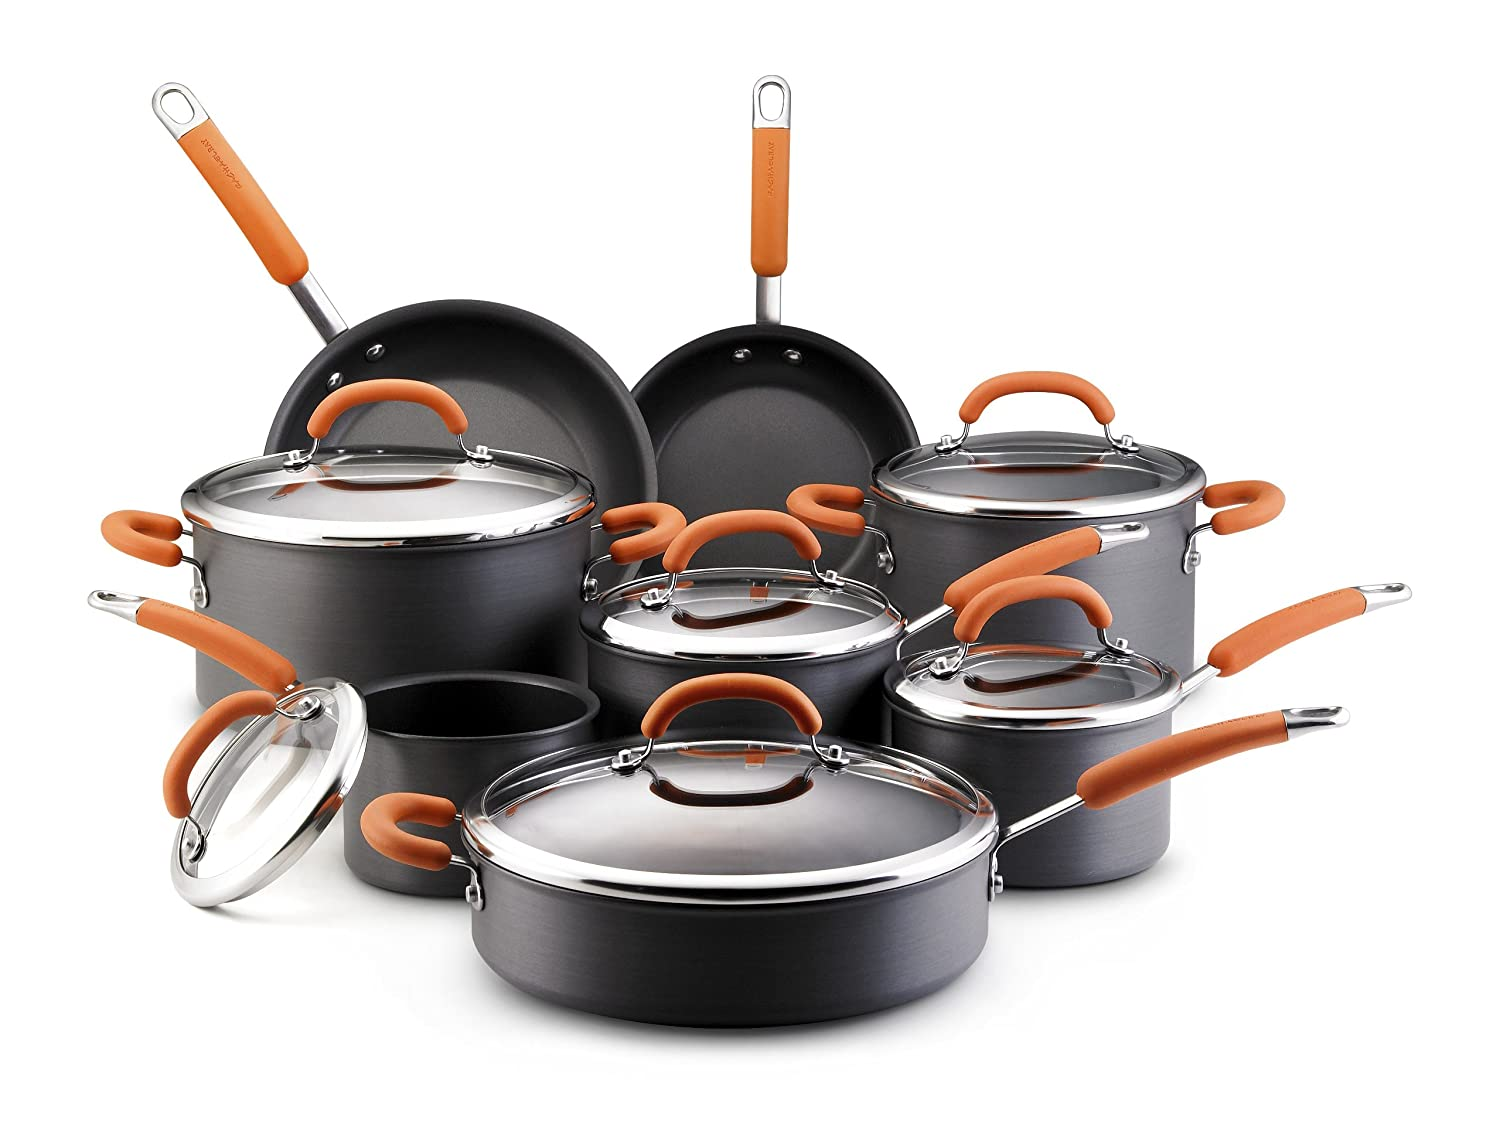 Rachael Ray Non Stick Hard Anodized Cookware Review